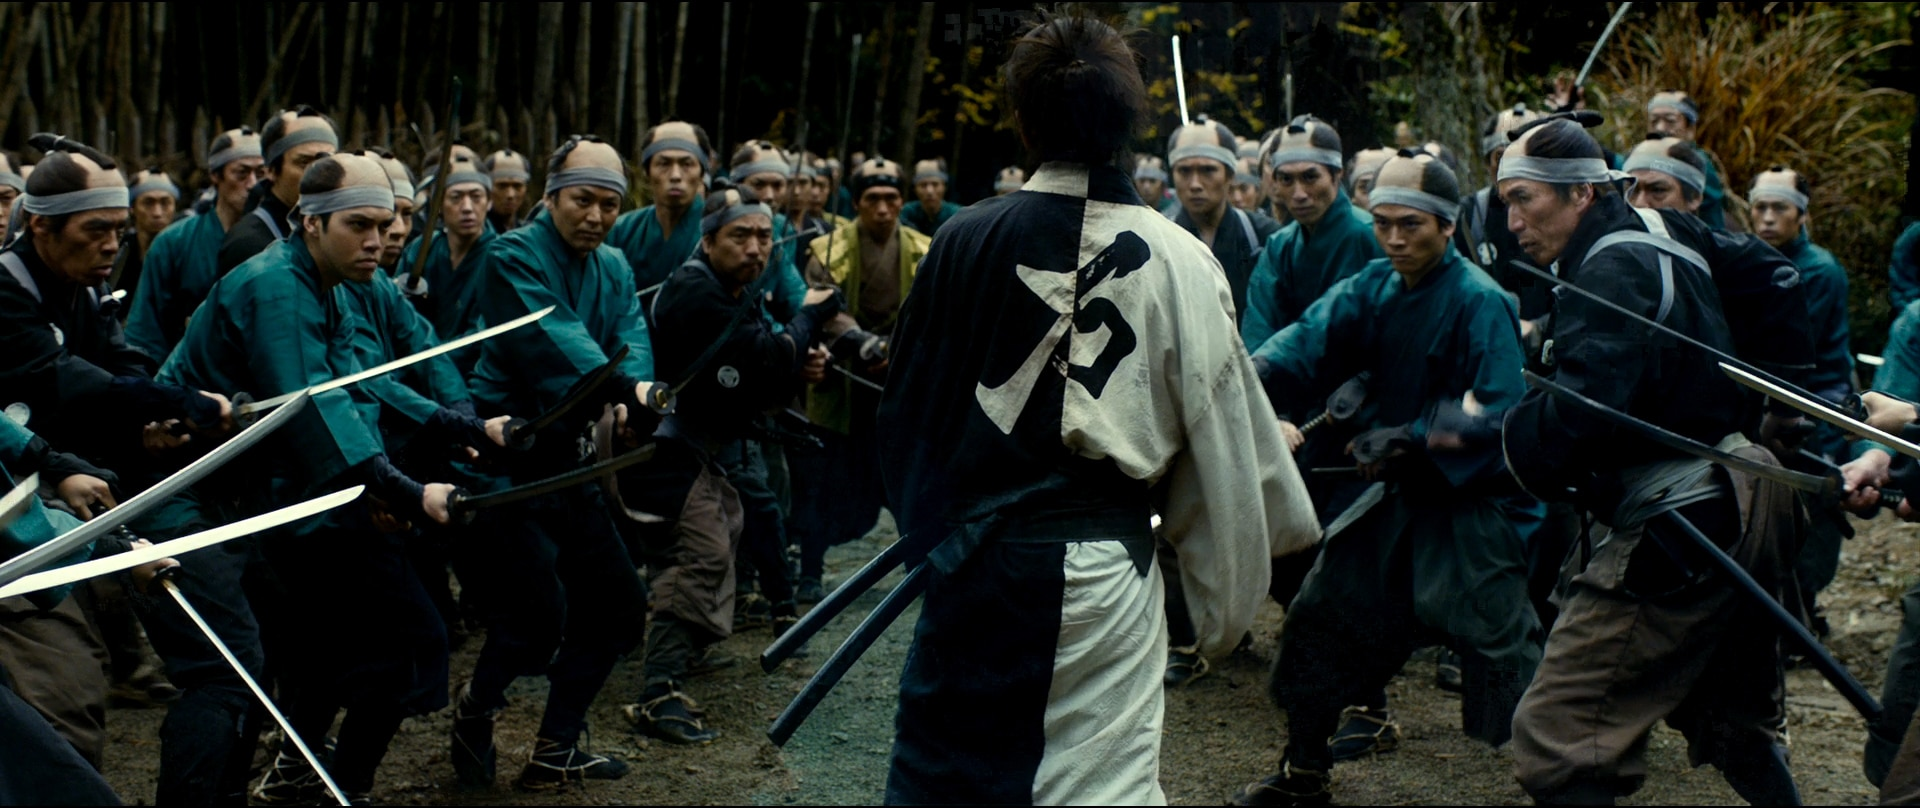 bladeoftheimmortalbanner - Interview: Takashi Miike on Blade of the Immortal, Directing 100 Films, and More; New Clips!